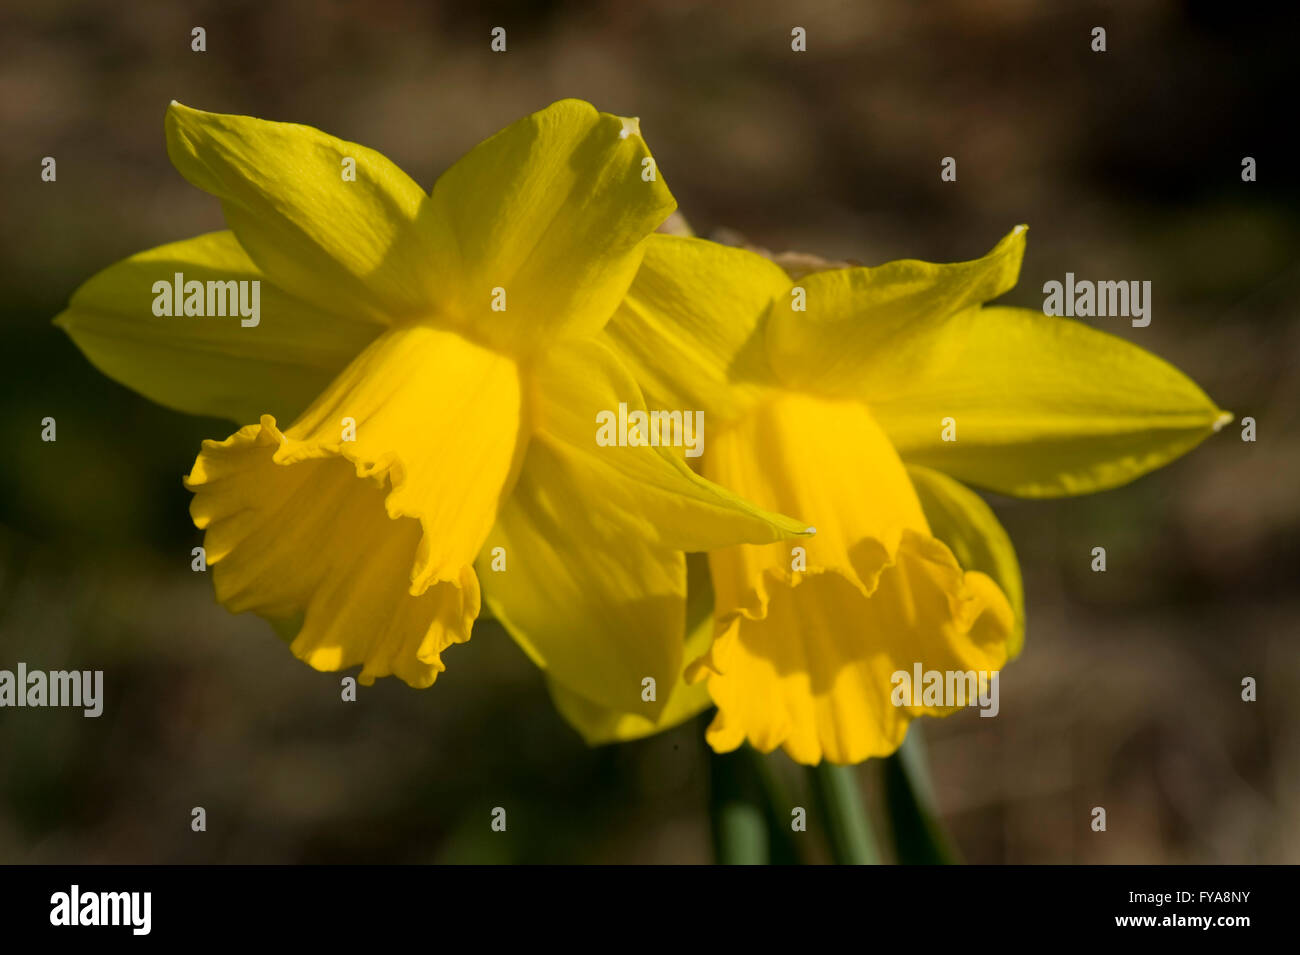 Large yellow daffodils in spring sunshine - Stock Image